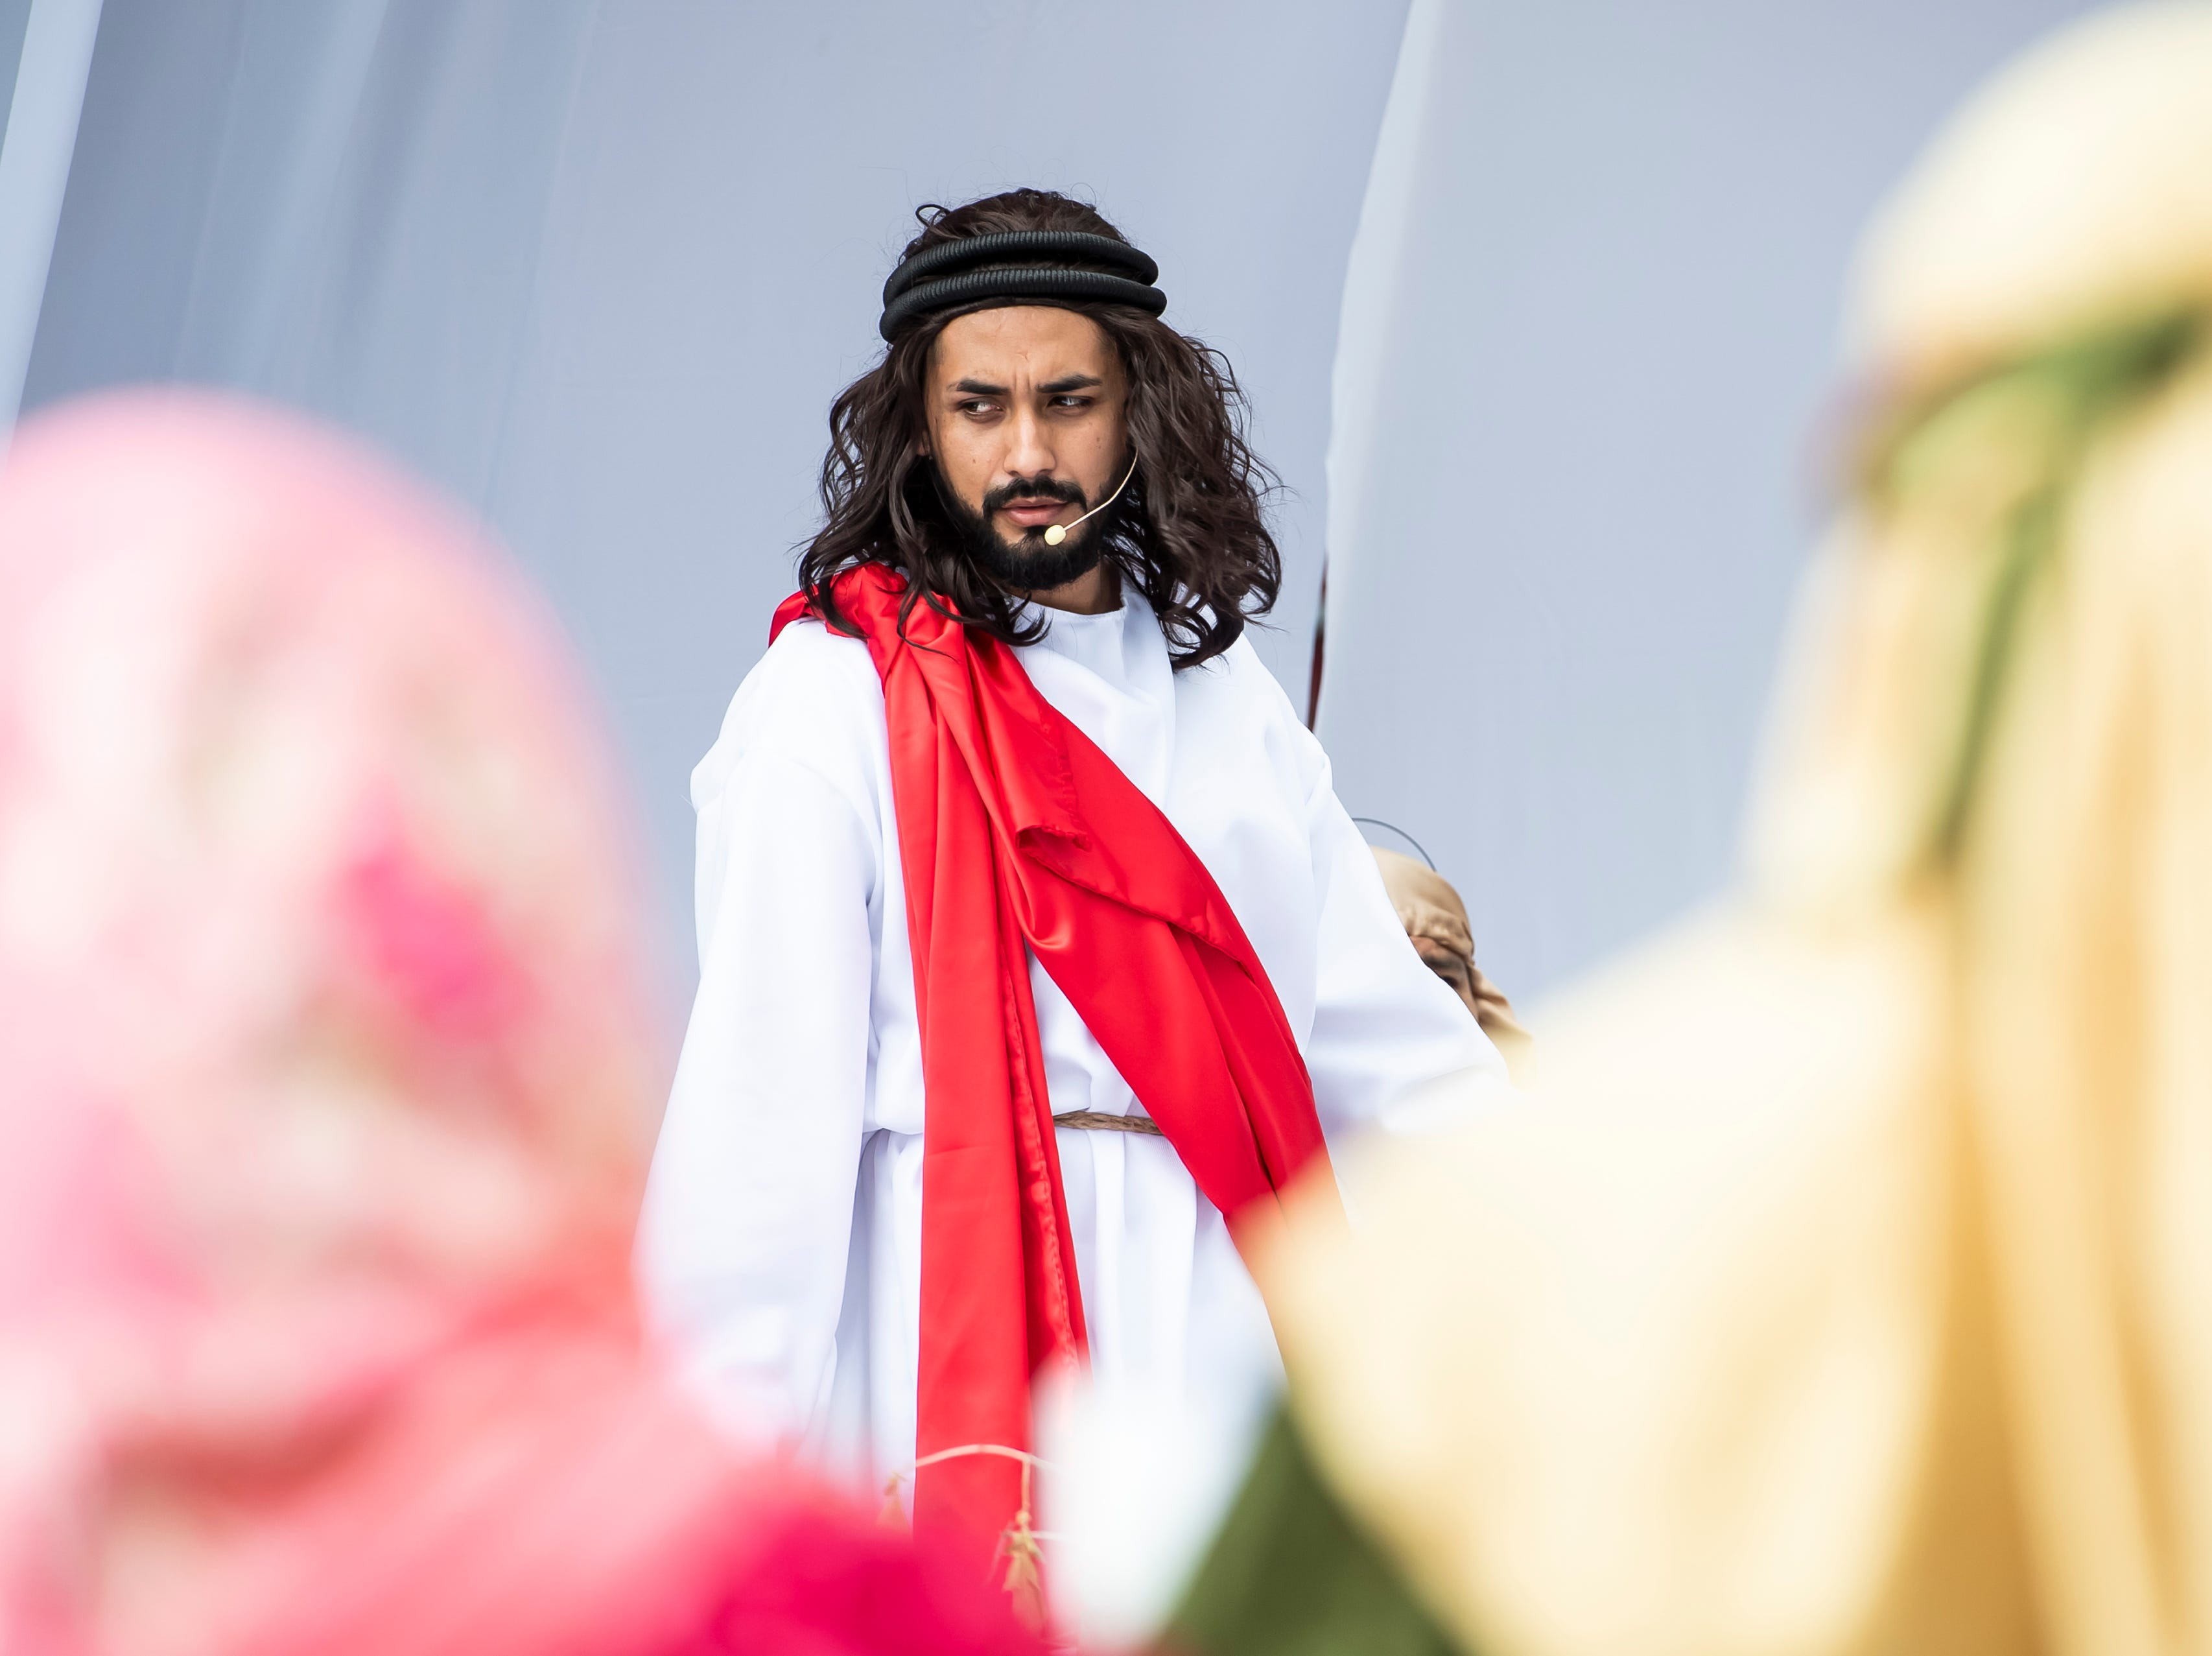 Jose Negret, portraying Jesus, takes part in in a Good Friday procession at St. Joseph Catholic Church in Hanover on Friday, April 19, 2019.